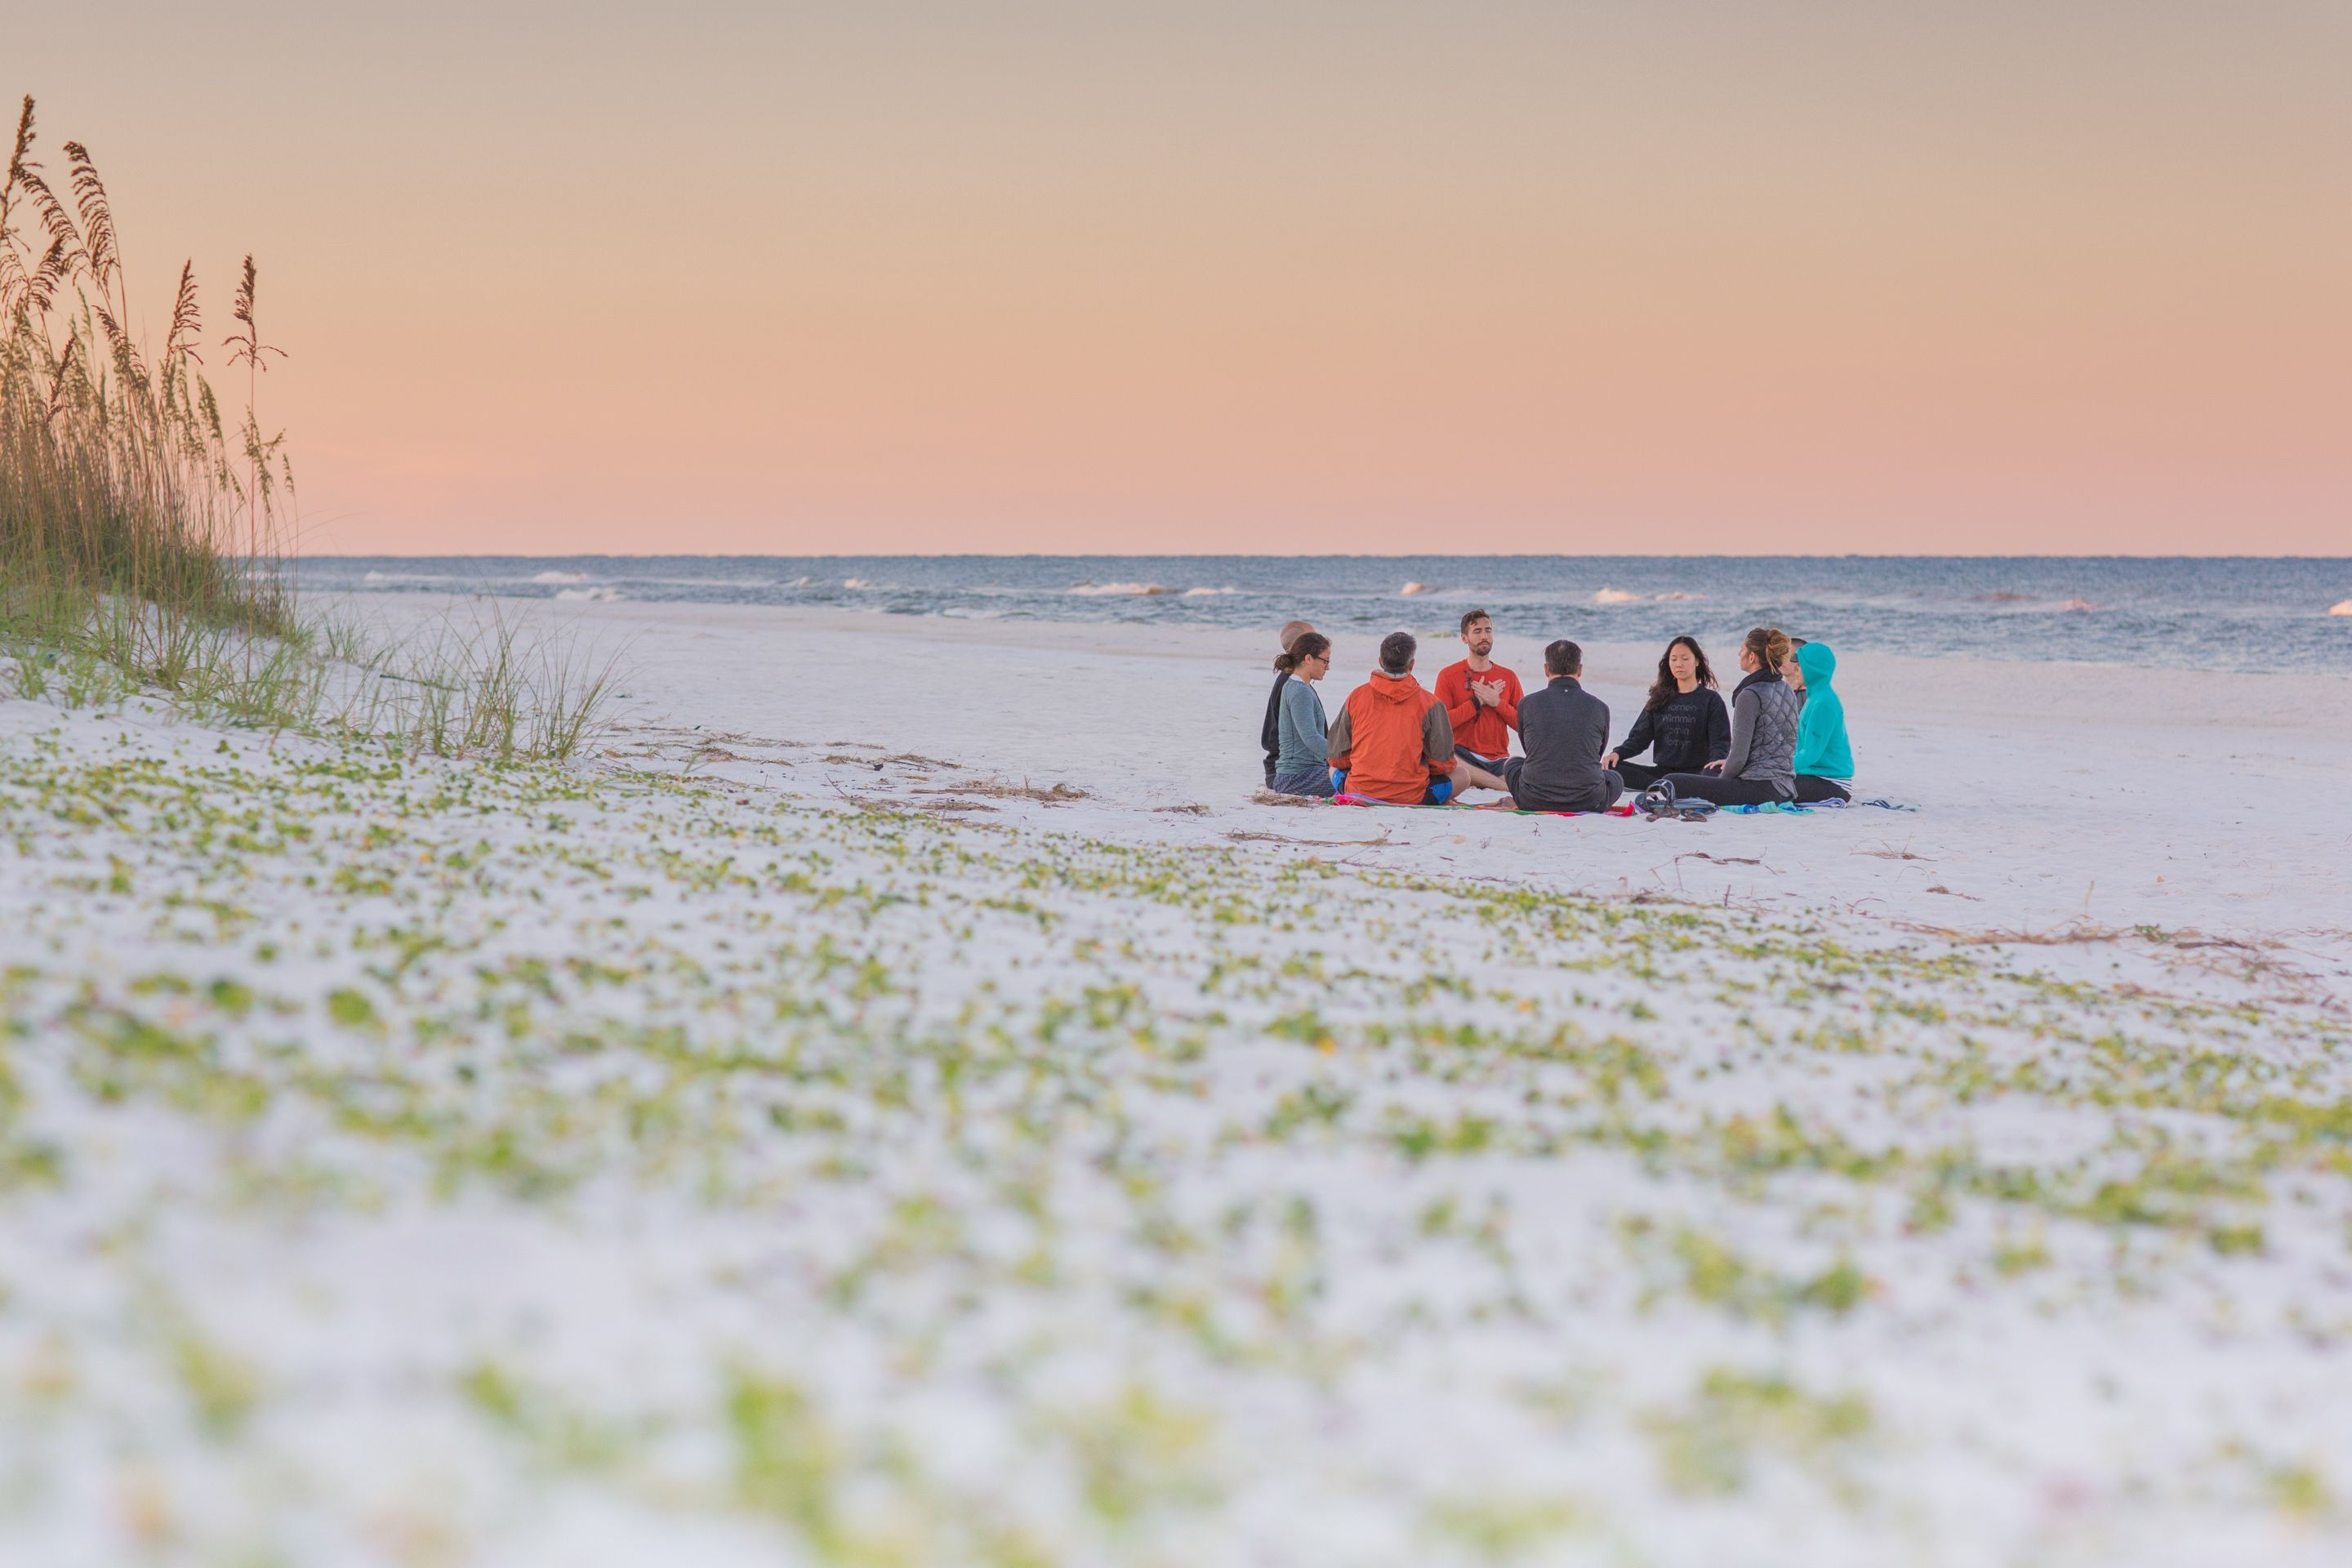 yoga group meditating on beach